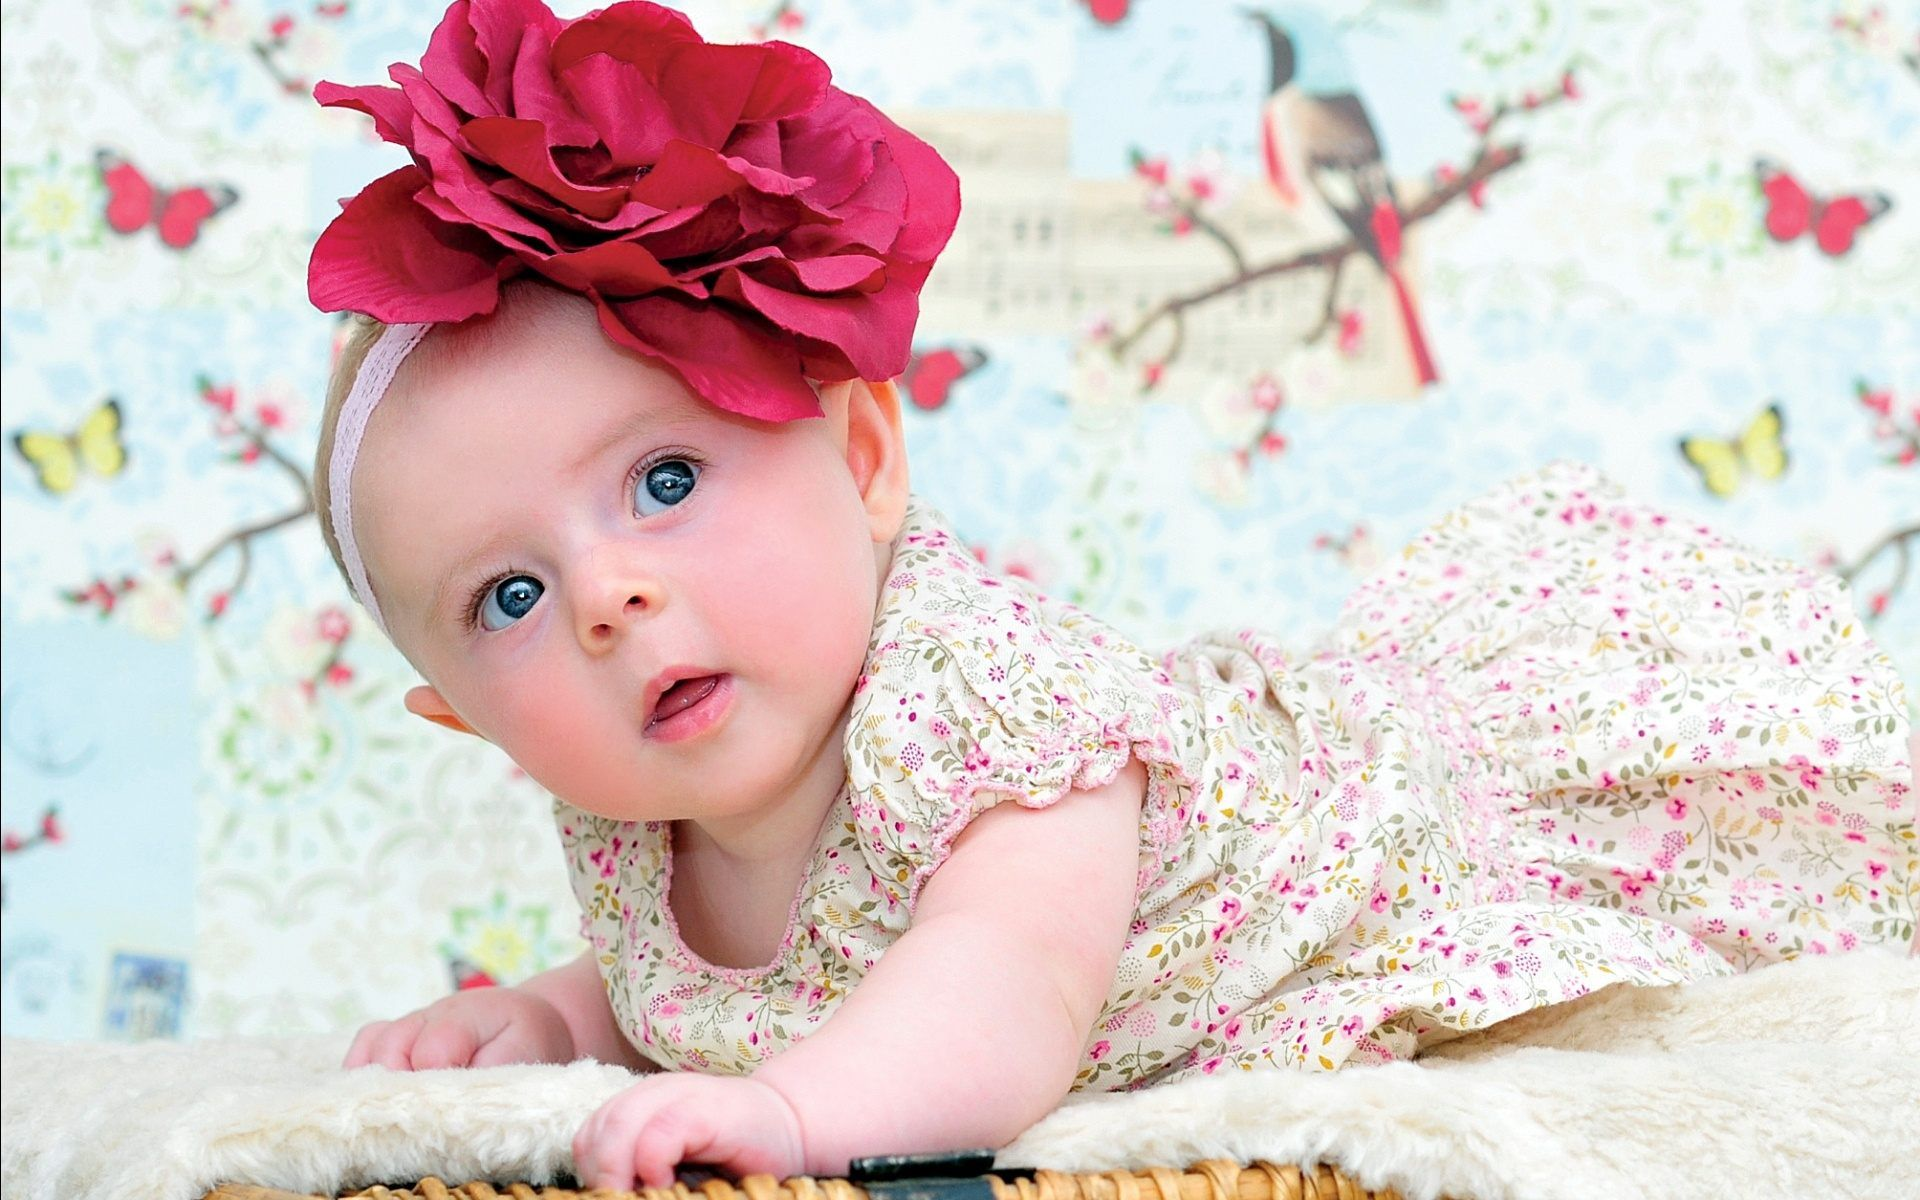 Wallpaper Hd For Widescreen Cute Little Baby Girl Of On Image ...